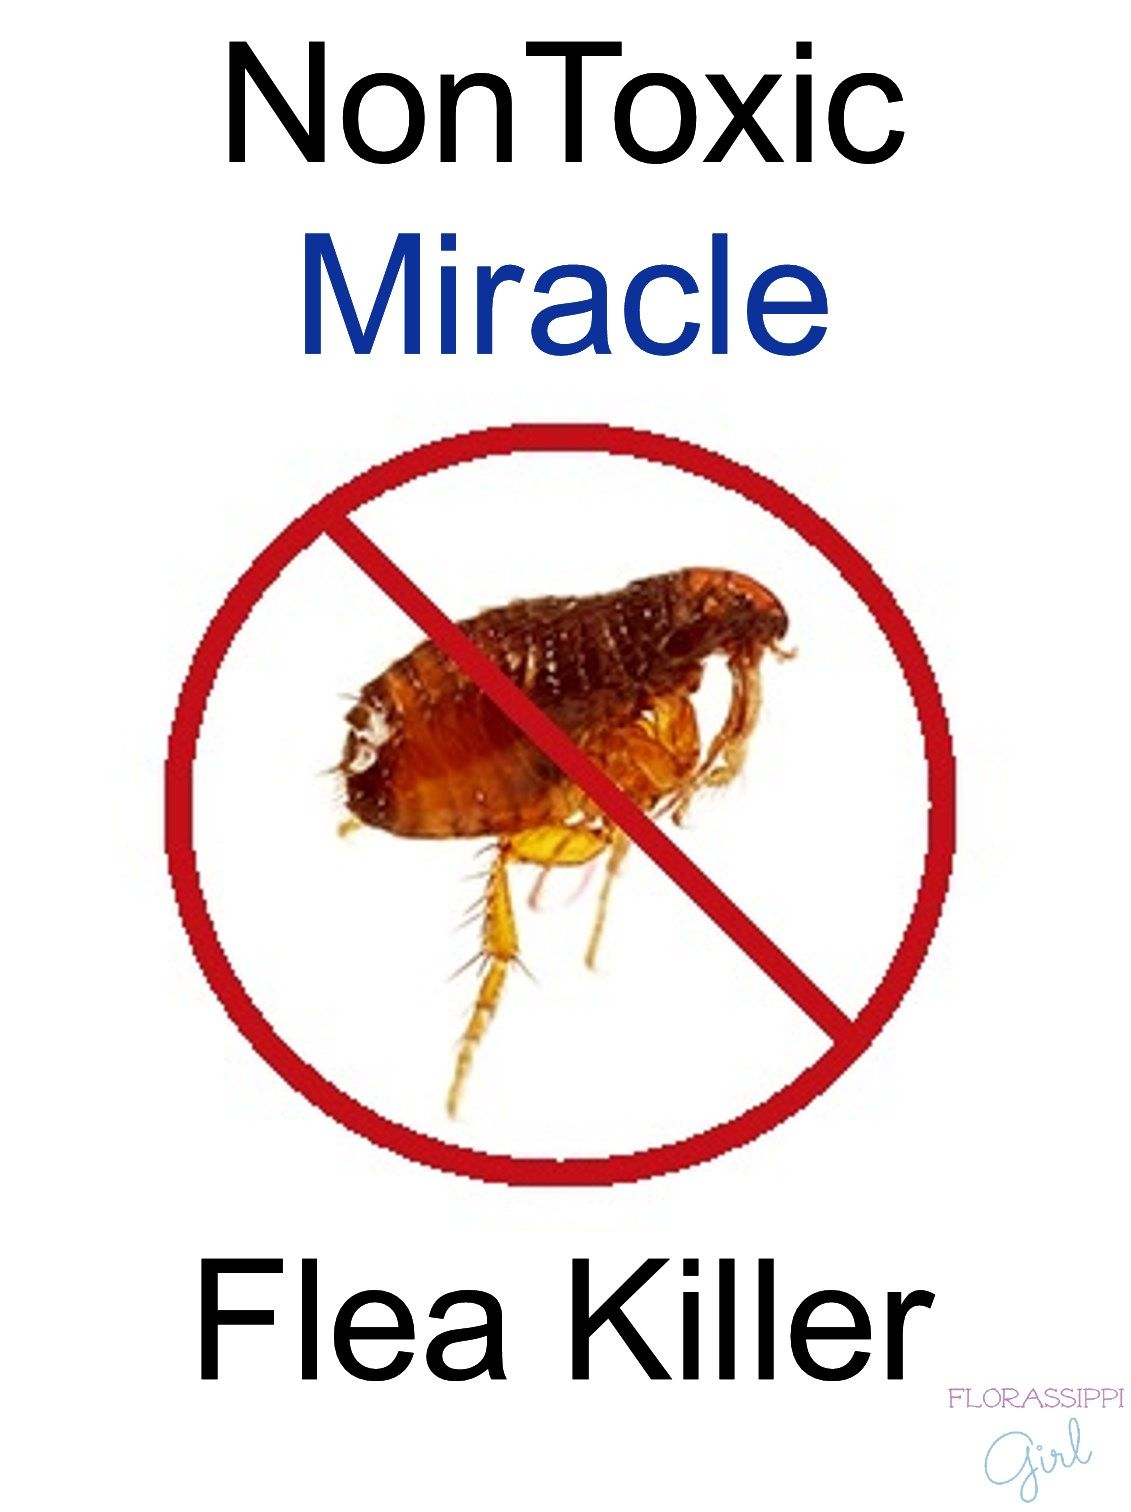 Diy Pest Control Spray Florassippi Girl Nontoxic Miracle Flea Killer